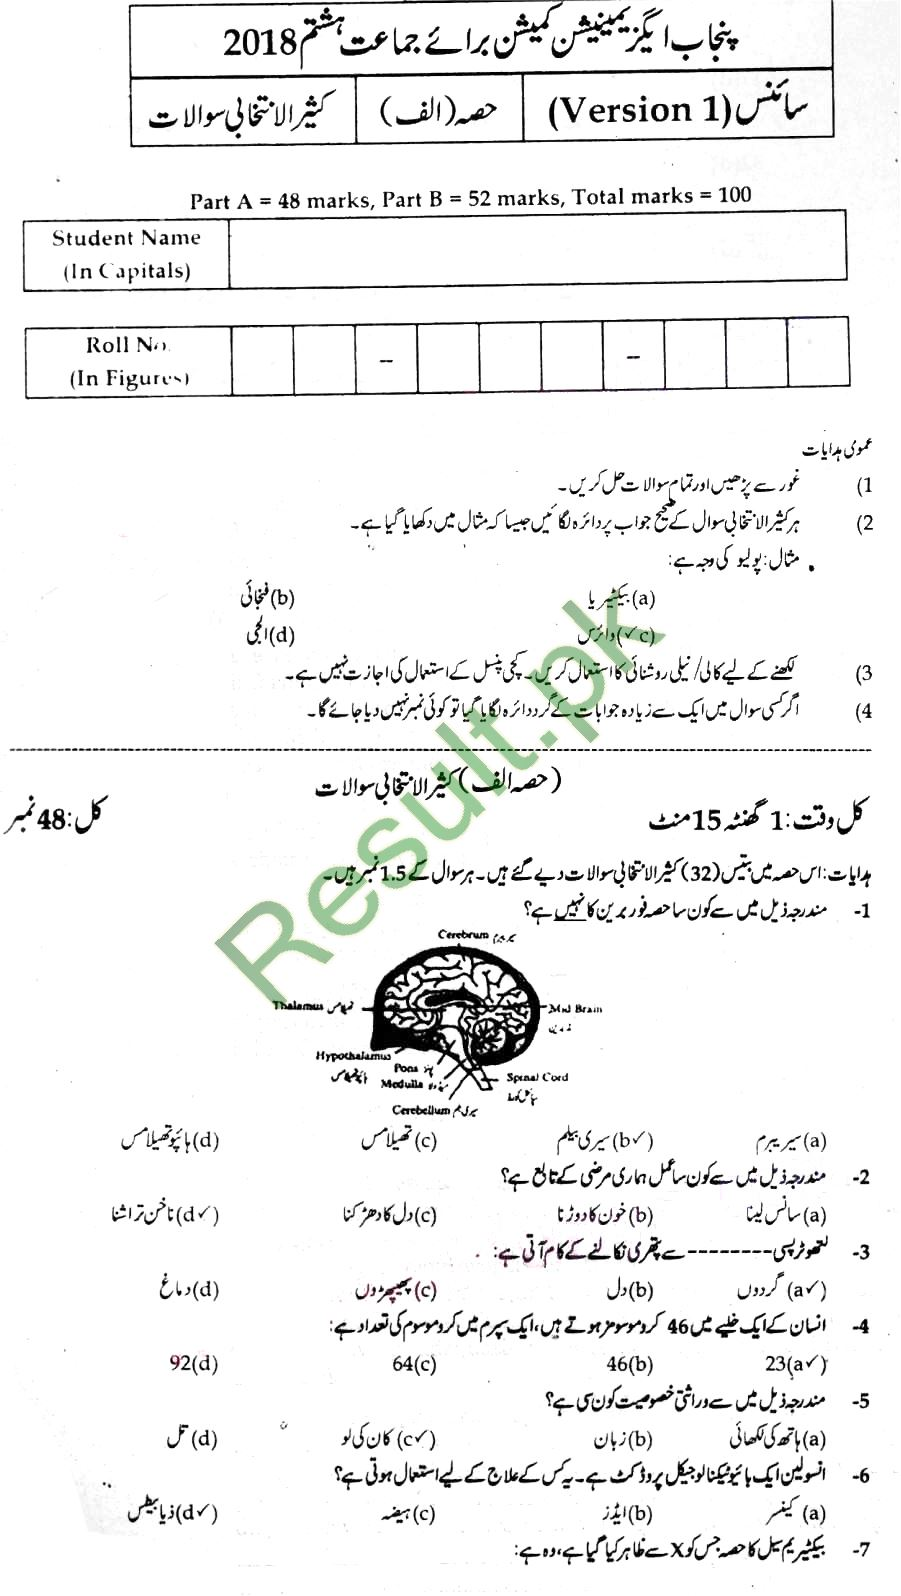 Punjab Education Commission Past Paper 2019 5th Class, Fifth